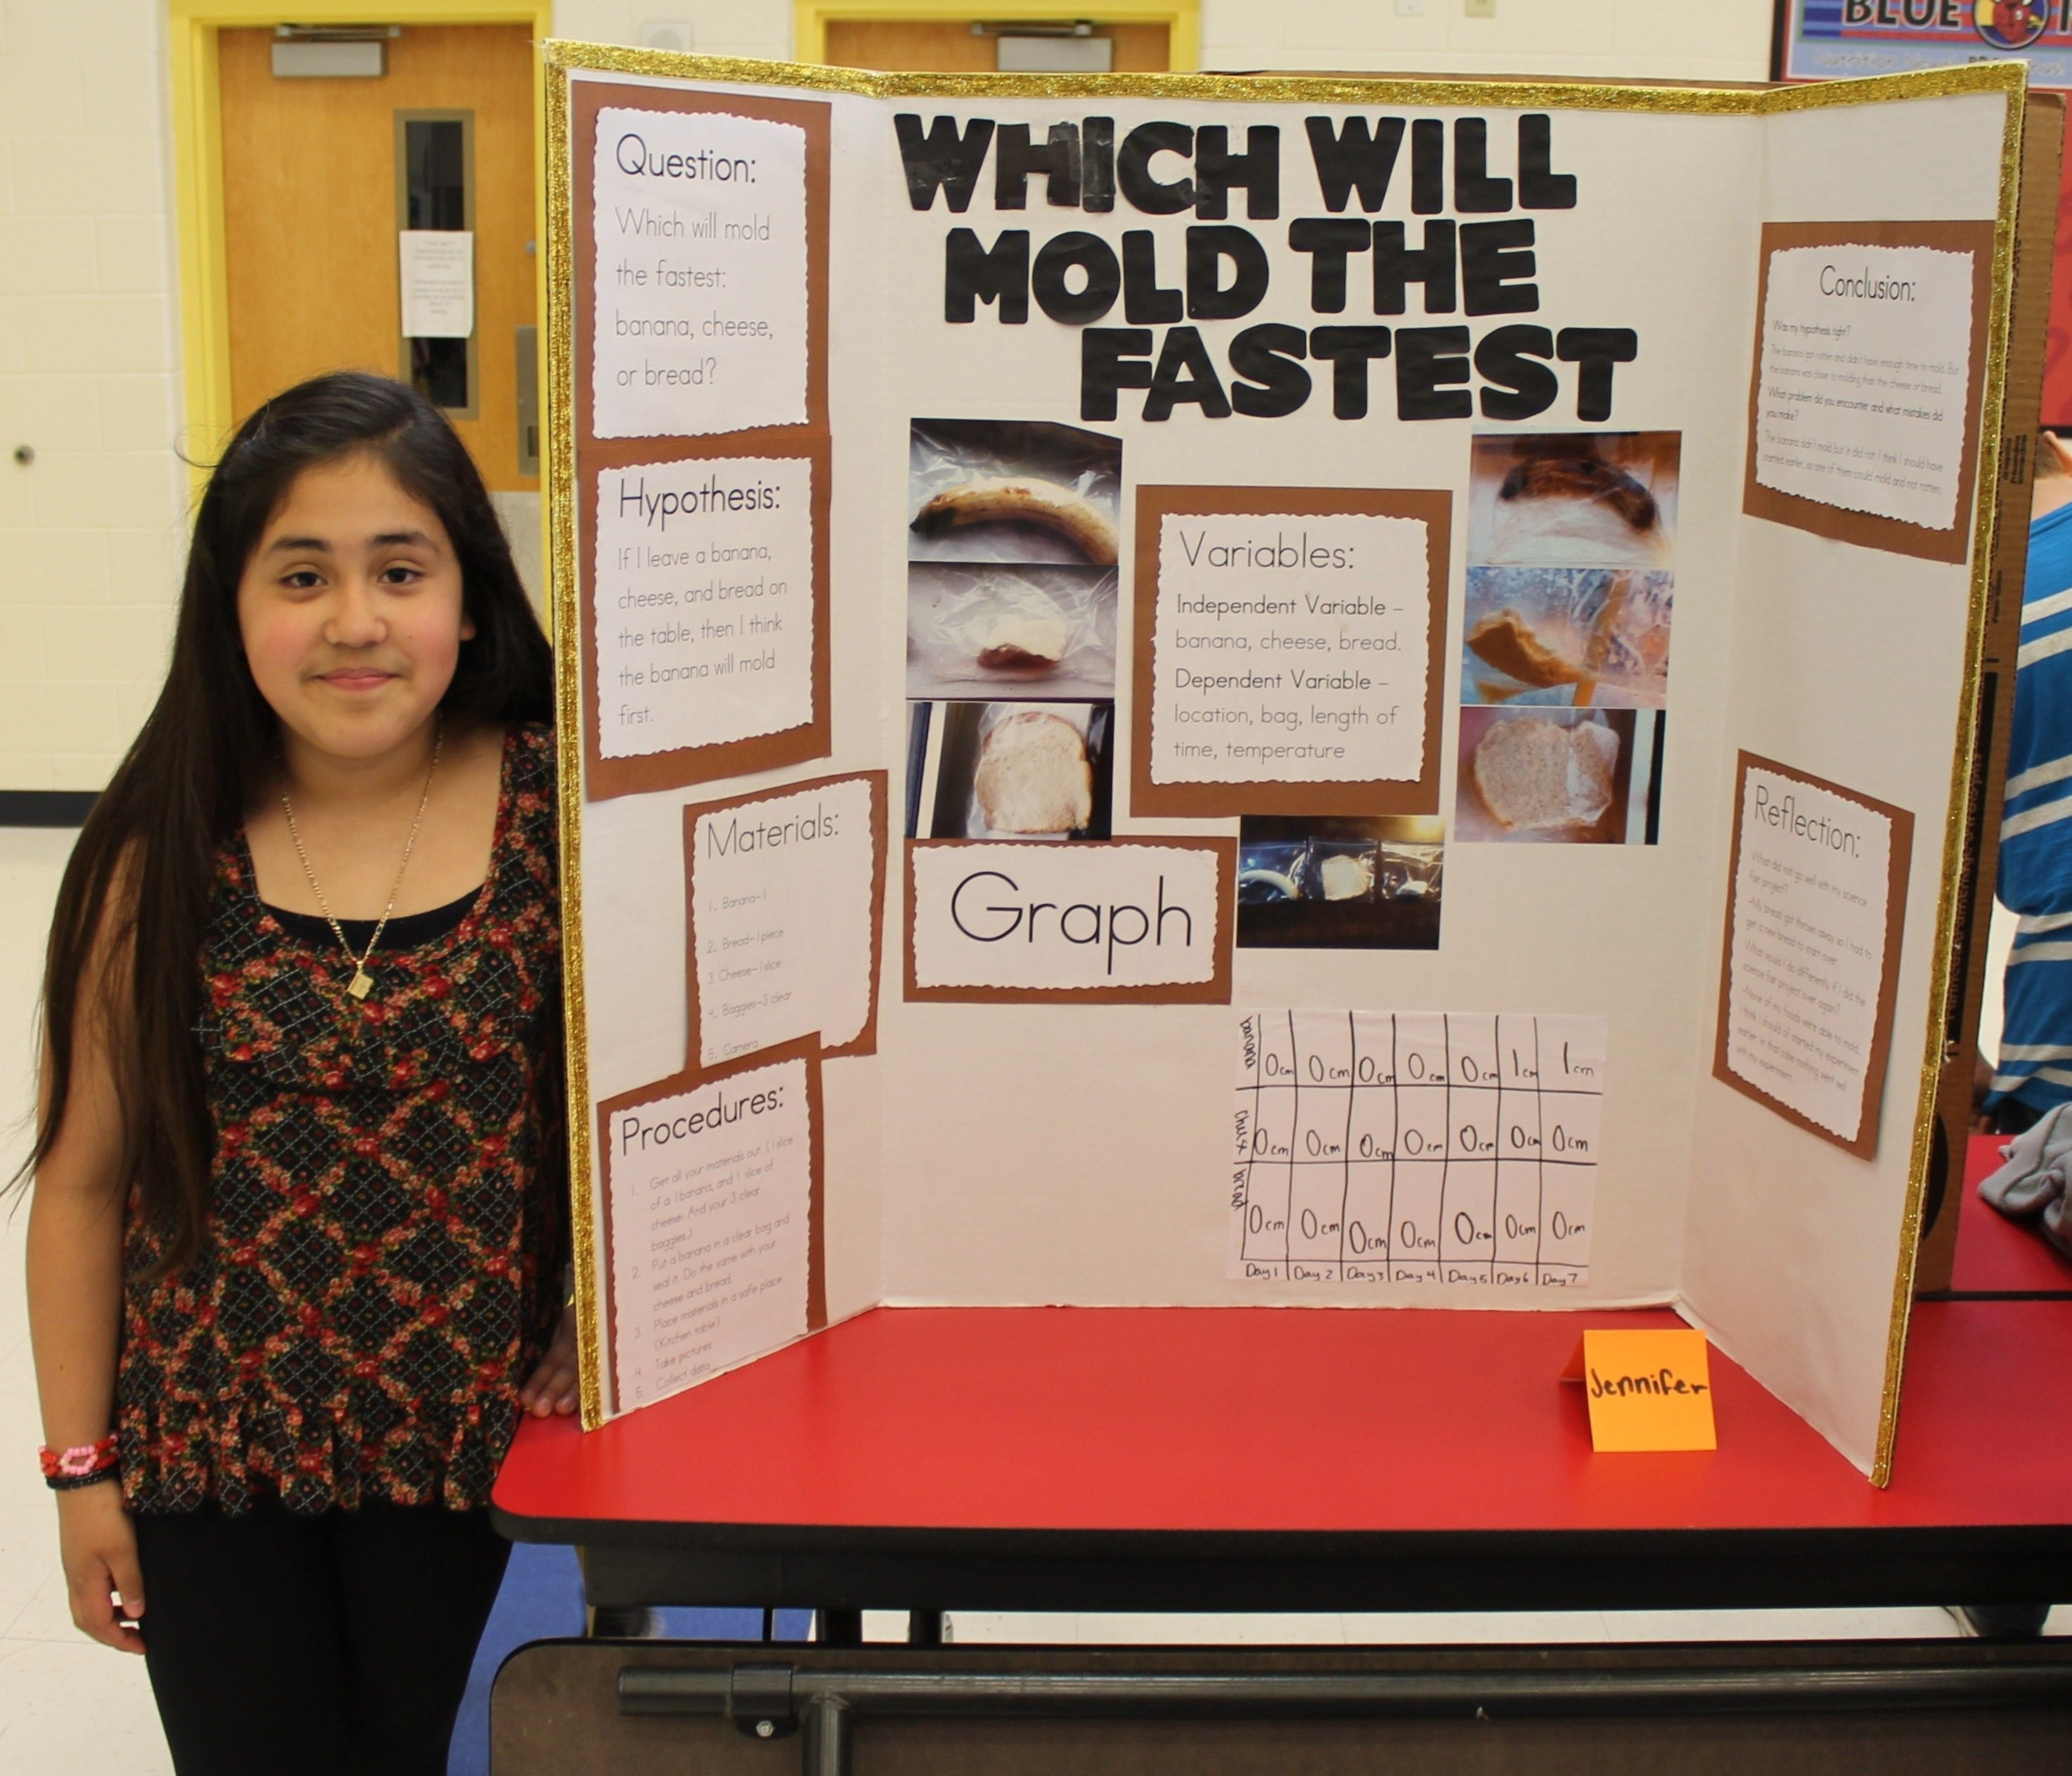 10 Nice Third Grade Science Fair Project Ideas easy science fair projects for 3rd grade idea google search 11 2020